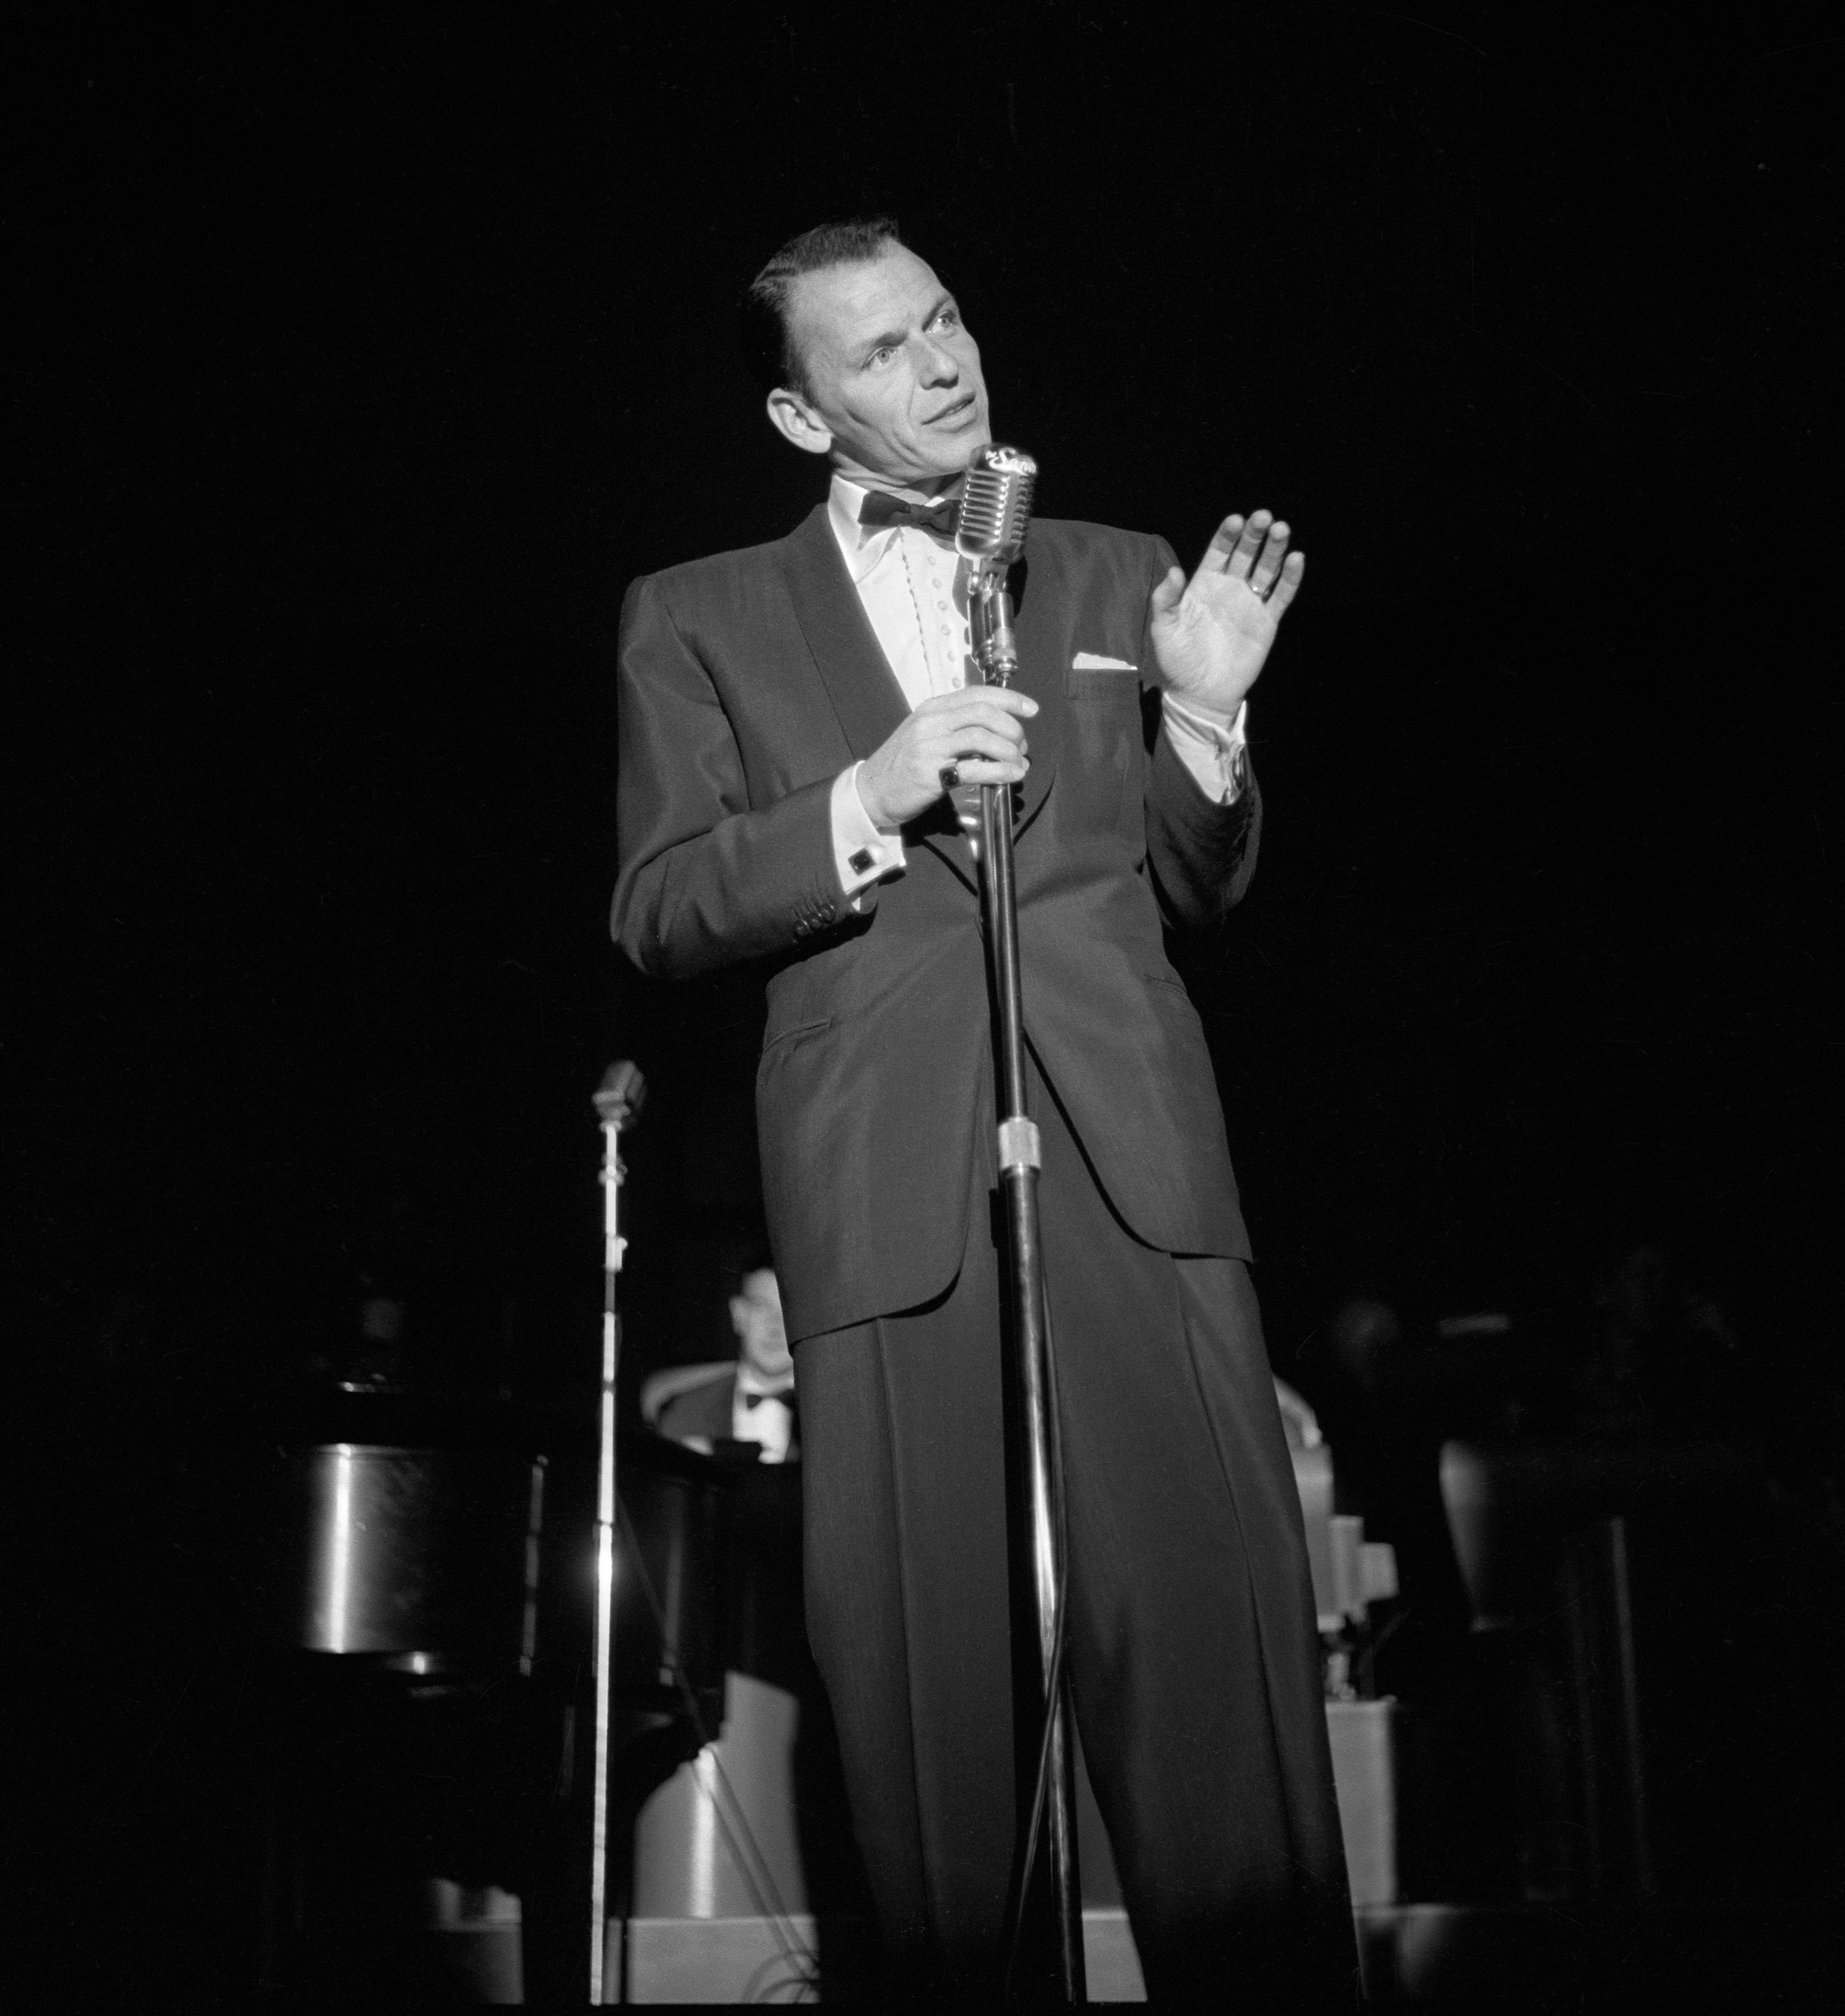 Frank Sinatra performs onstage at the Sands in Las Vegas in 1953.  CREDIT: Las Vegas News Bureau. For editorial use by news organizations only.